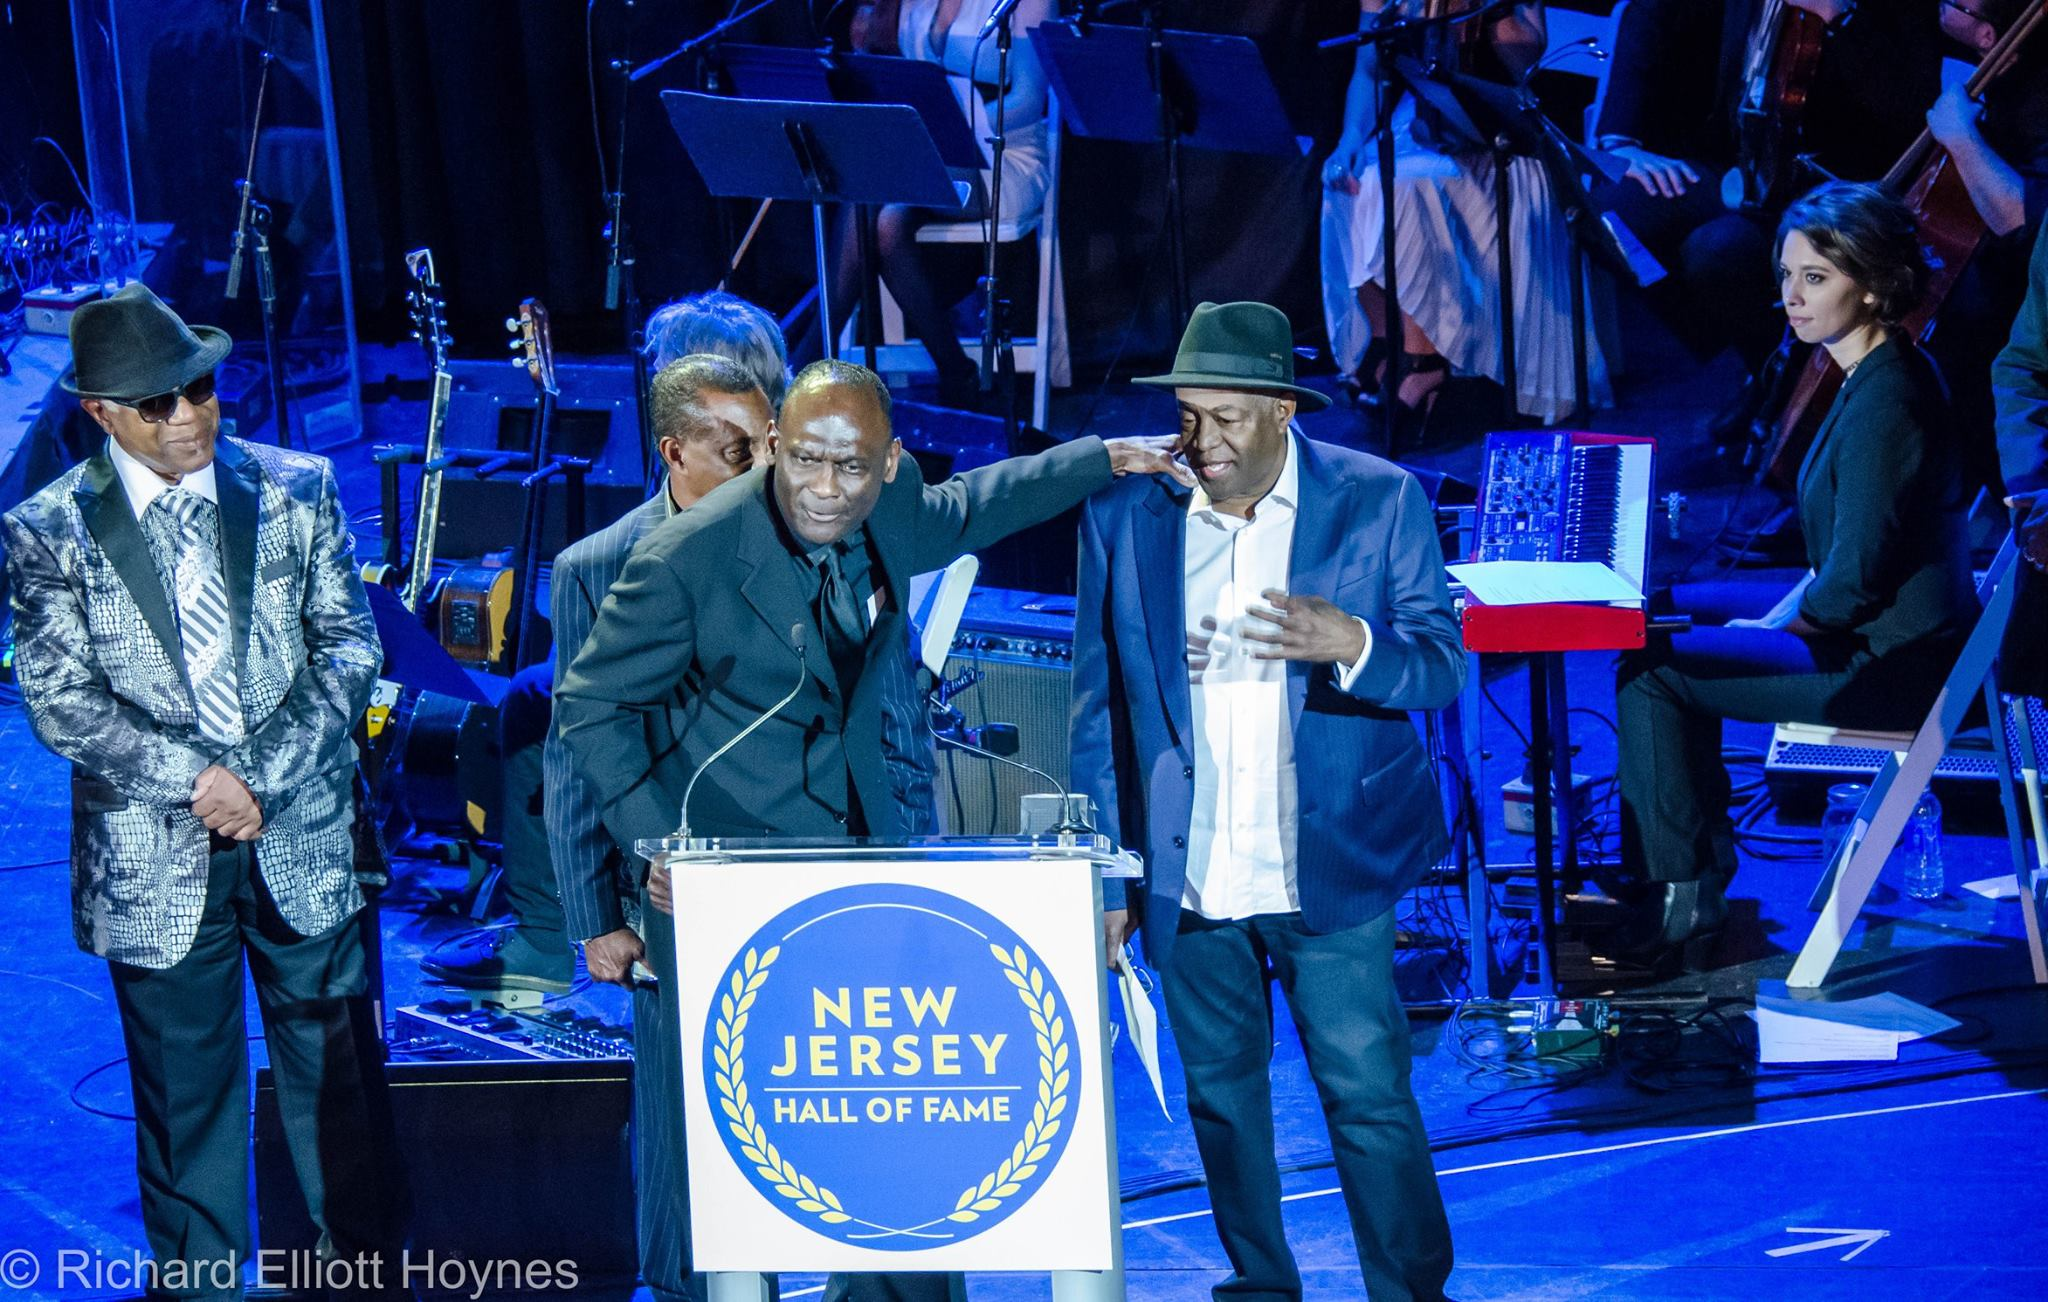 NJ 8th Annual Hall of Fame Induction Ceremony - Paramount Theatre, Asbury ParkApril 7, 2016